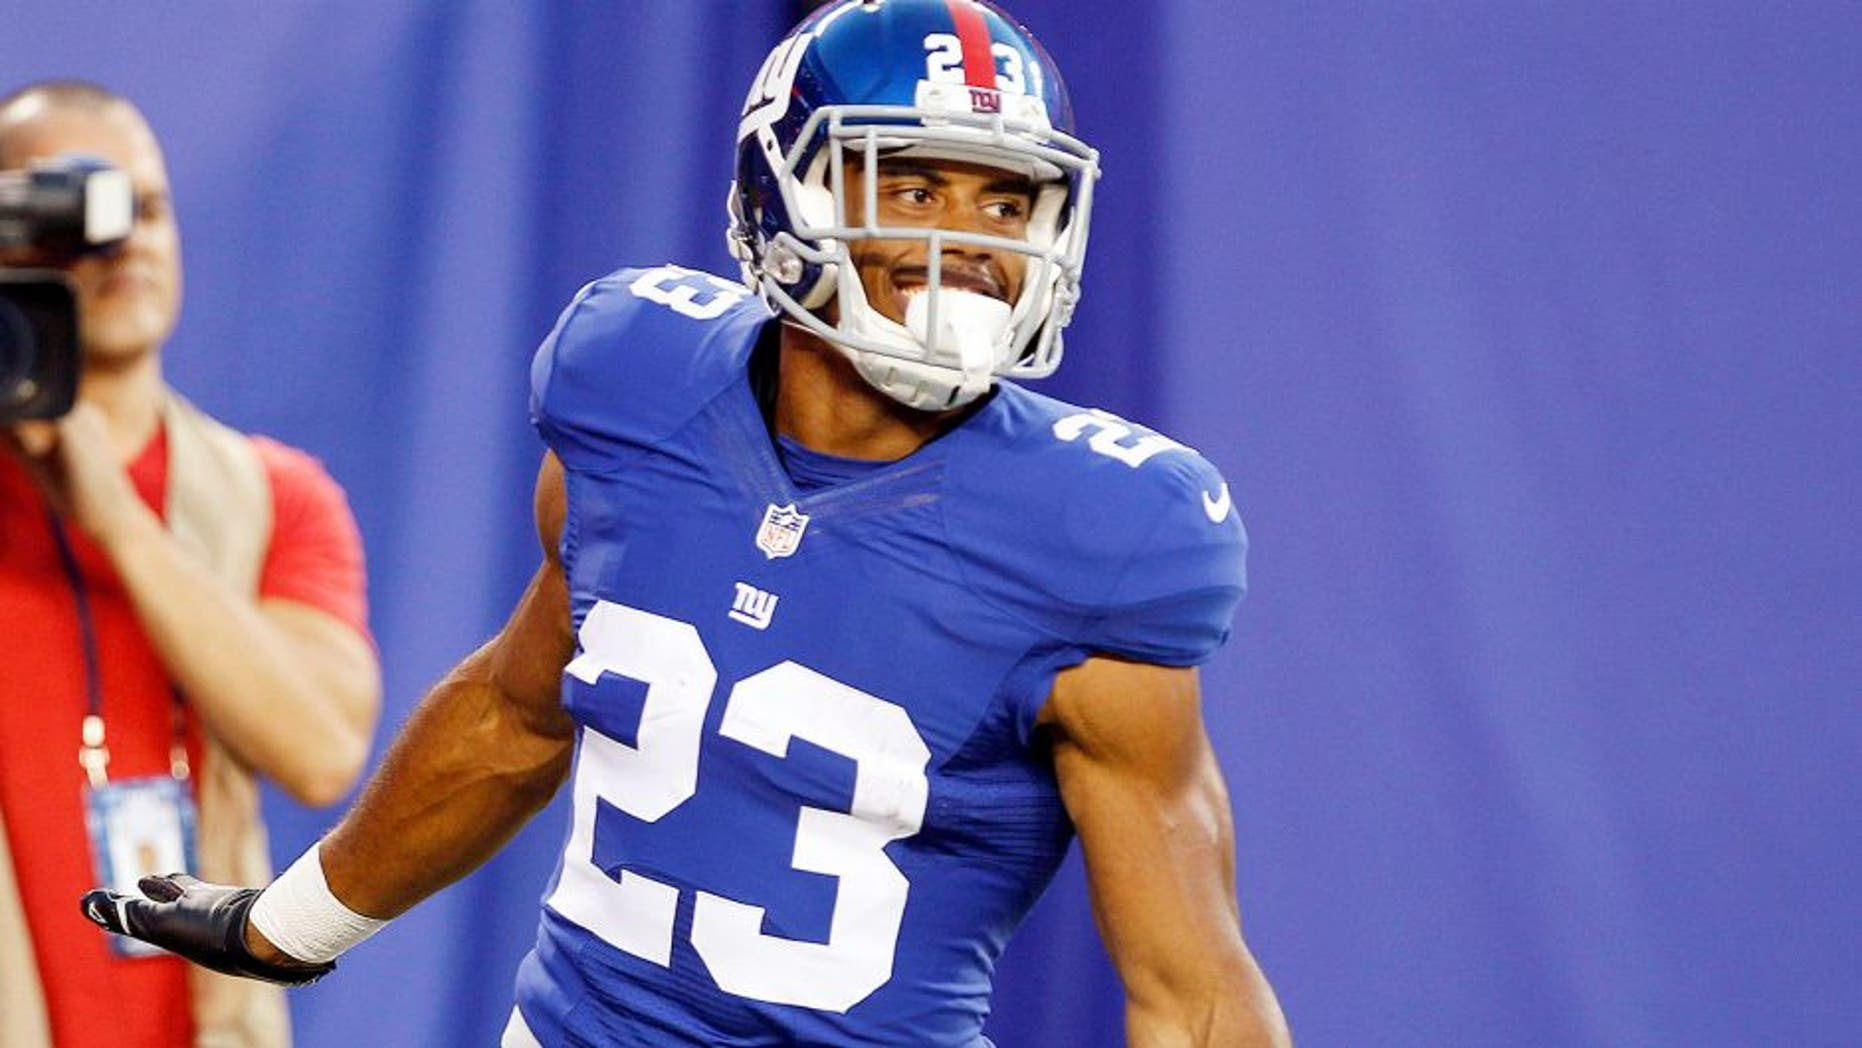 Aug 9, 2014; East Rutherford, USA; New York Giants running back Rashad Jennings (23) celebrates after scoring a touchdown against the Pittsburgh Steelers during the preseason game at MetLife Stadium. Mandatory Credit: William Perlman/THE STAR-LEDGER via USA TODAY Sports